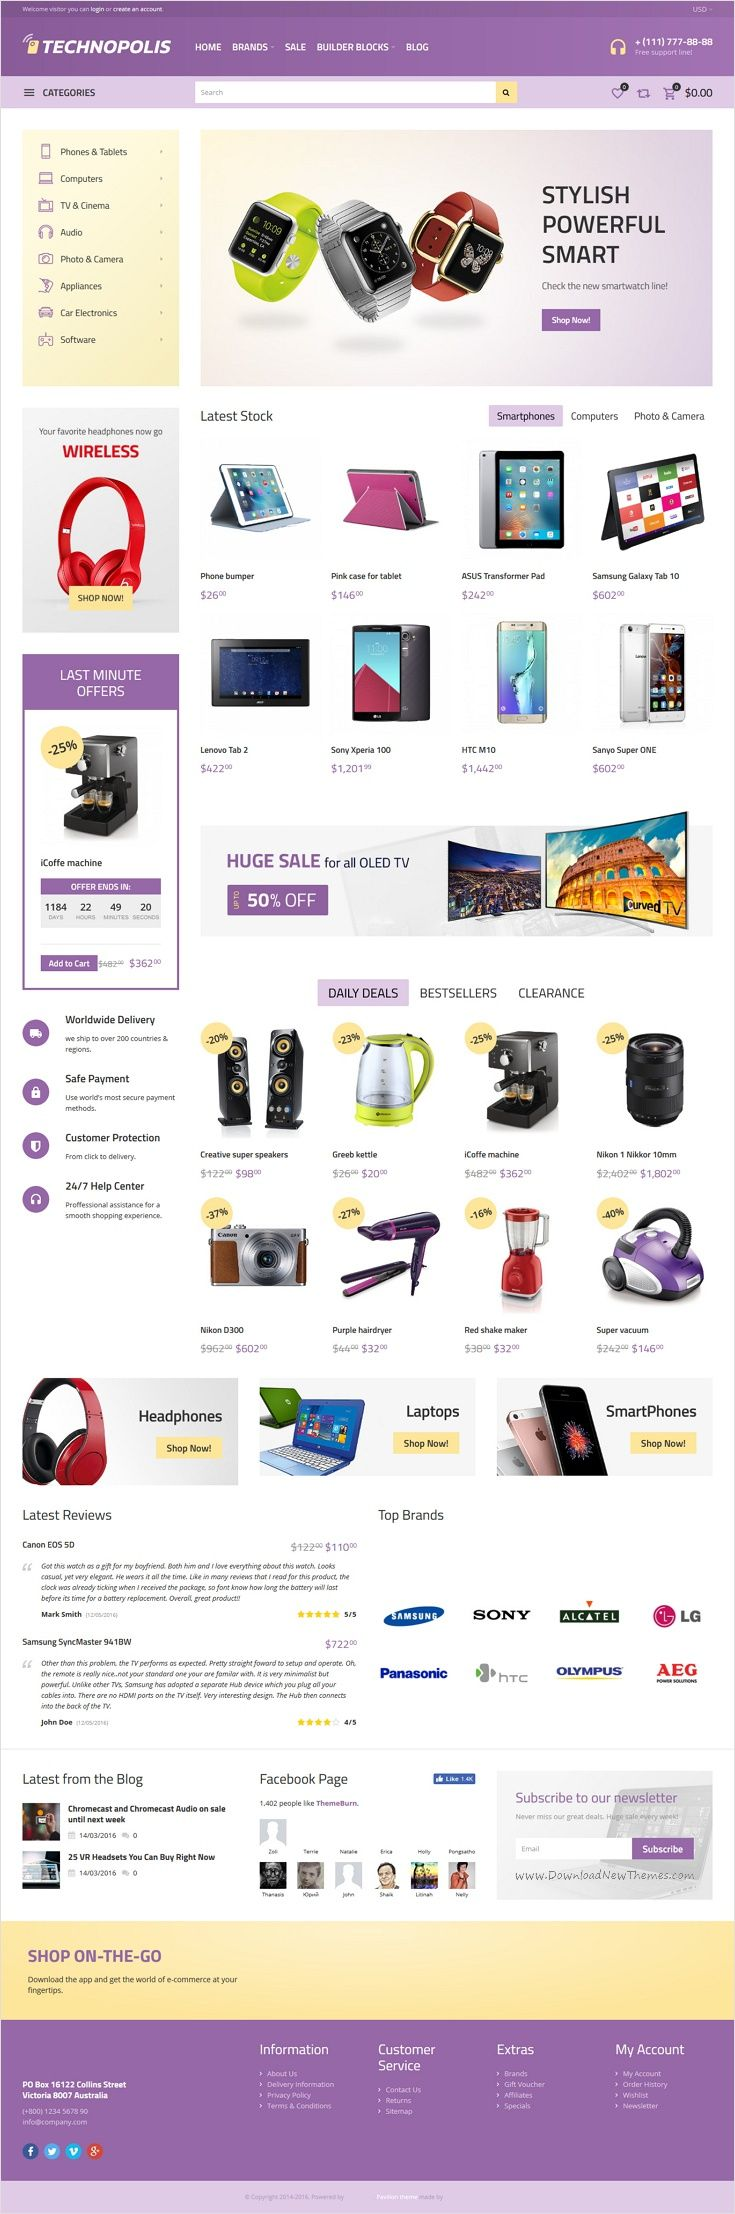 Rechnopolis is beautifully design 3 in 1 #Opencart theme for selling #appliances, #tech #products, electronics and accessories eCommerce website download now➩ https://themeforest.net/item/technopolis-electronics-store-opencart-theme/17378503?ref=Datasata